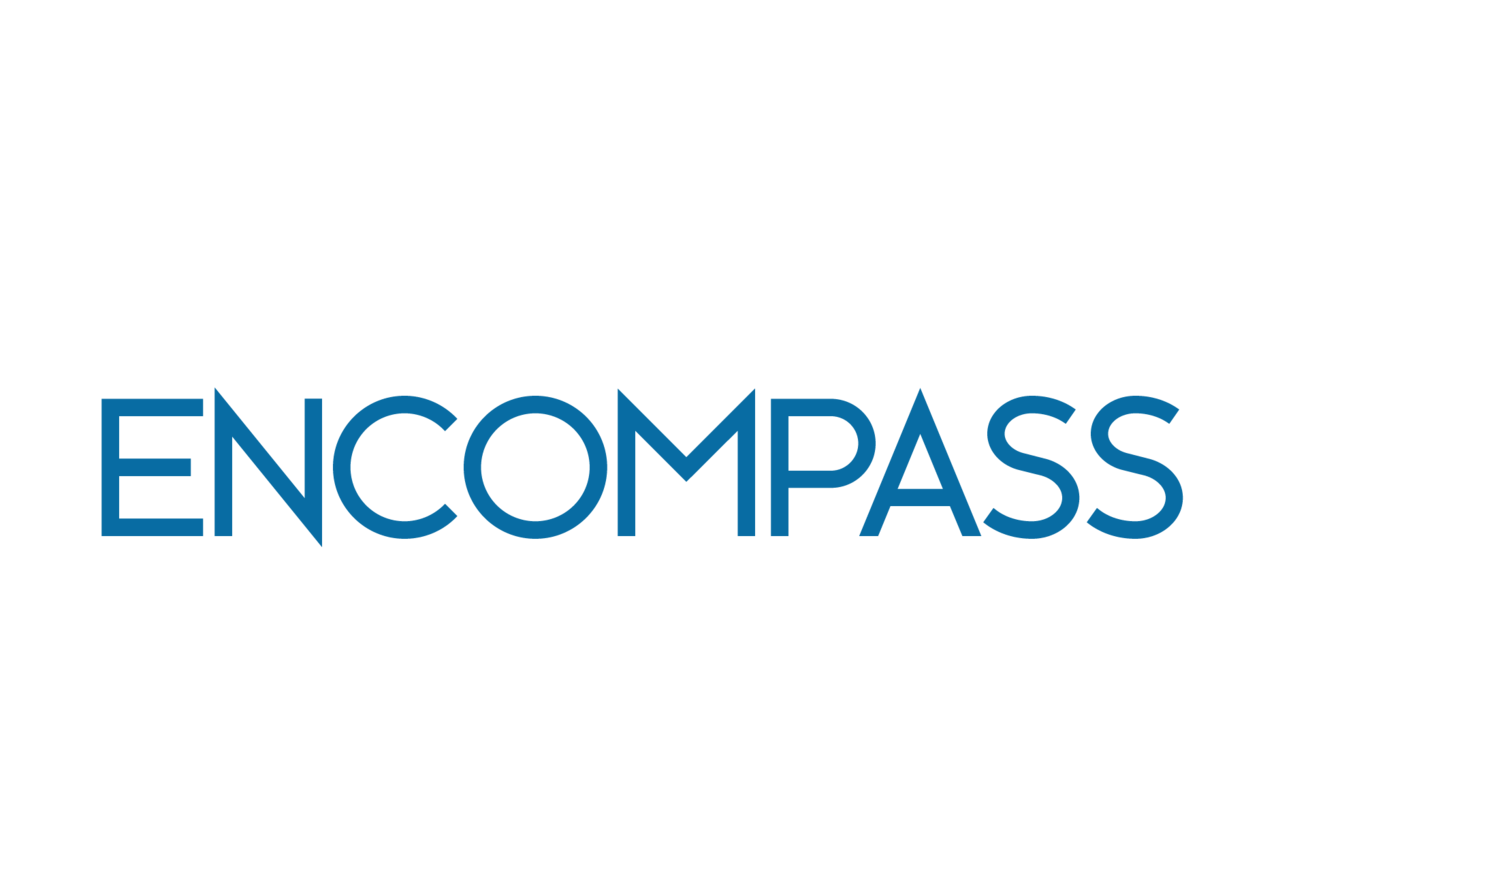 Encompass Property Management